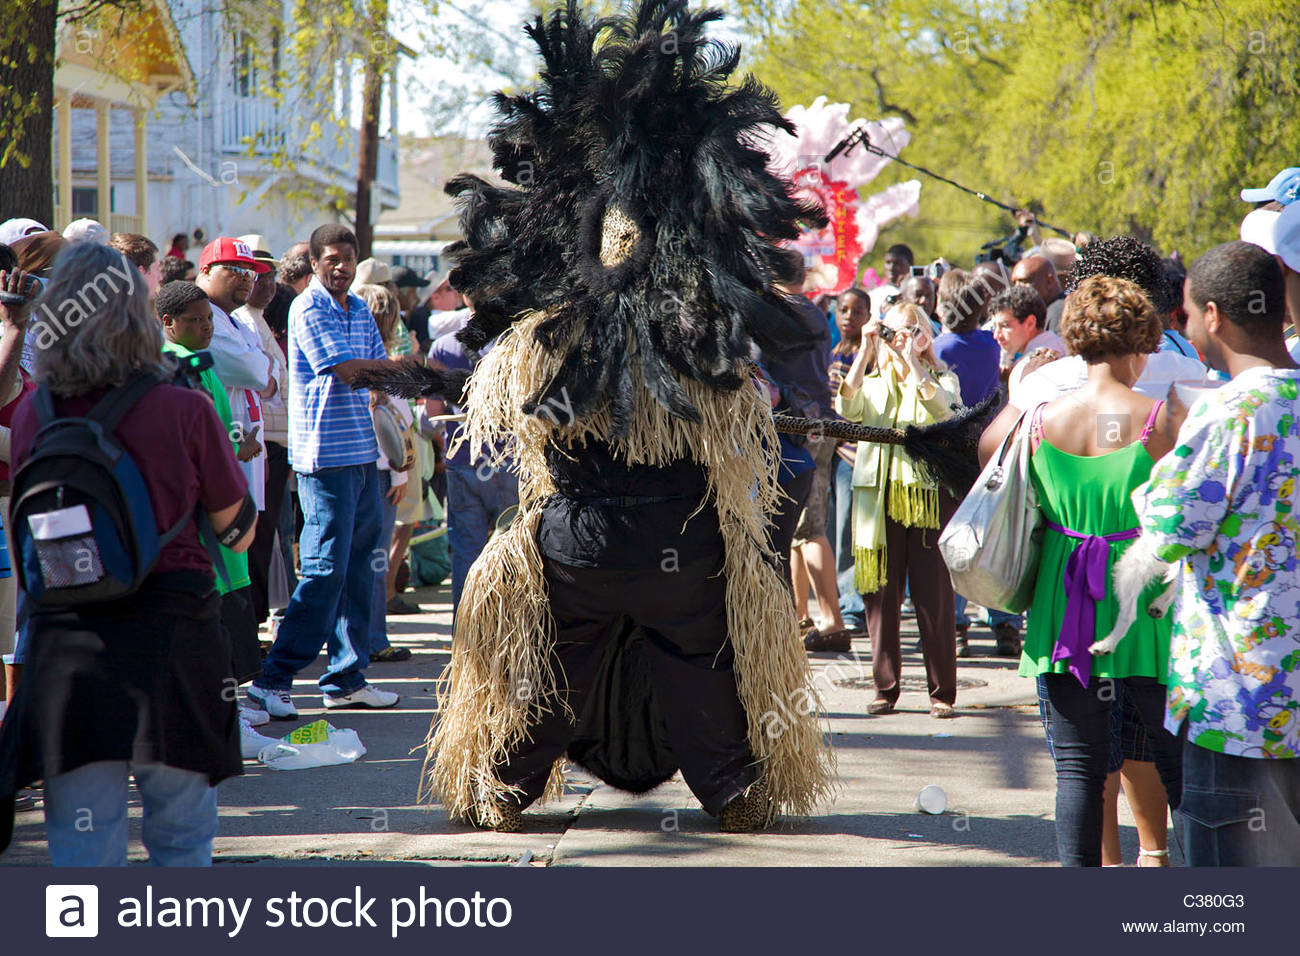 A Mardi Gras Indian wearing traditional hand-made costume sewn from feathers and beads, New Orleans, Louisiana - Stock Image